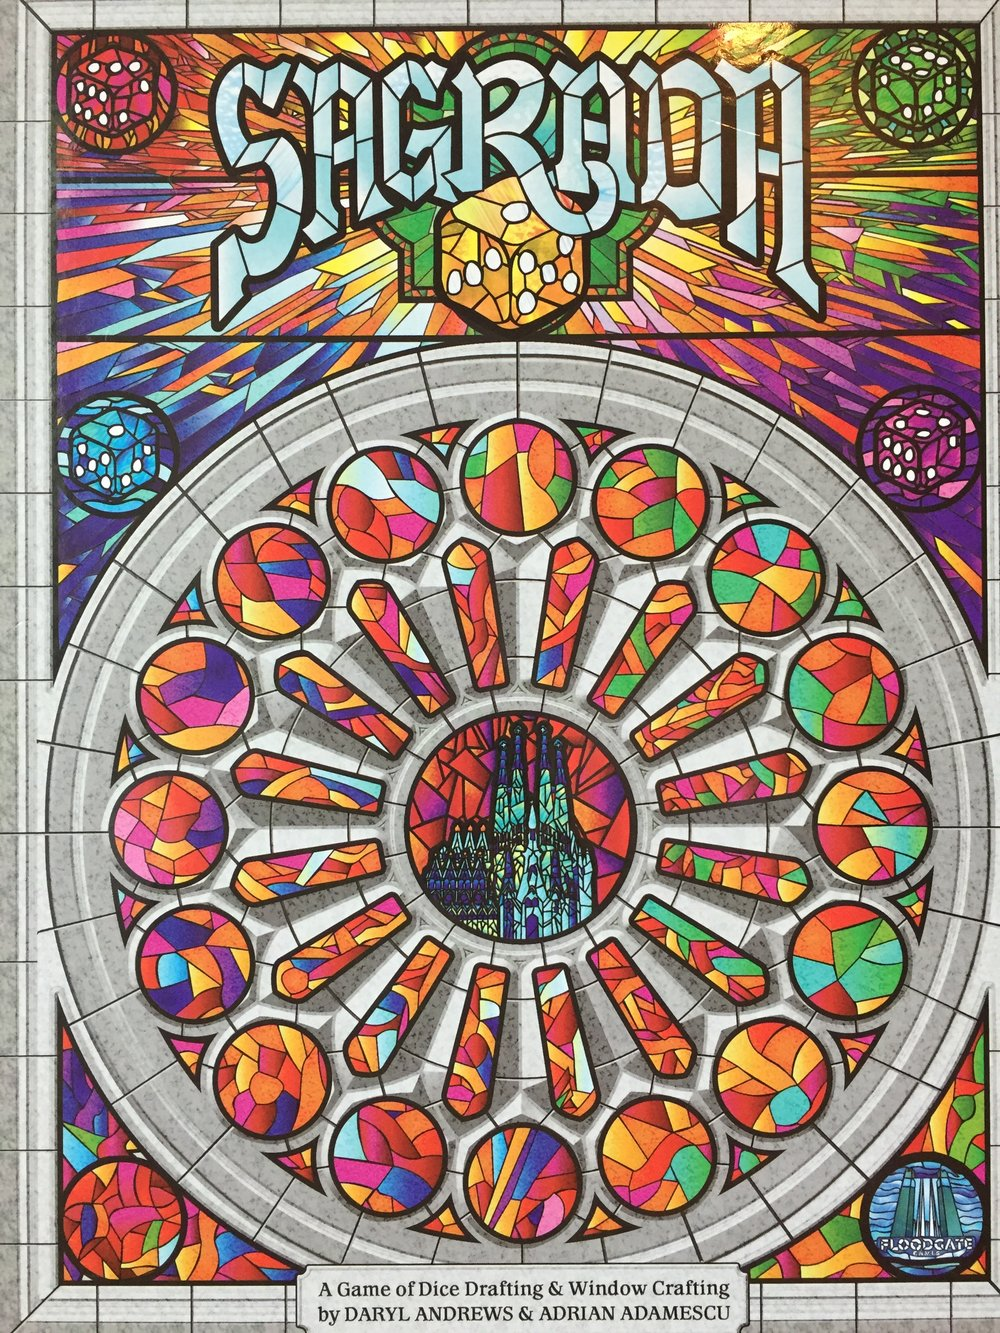 Sagrada is an addictive puzzle game with vibrant art design and components, just like the real-life Sagrada Familia in Spain.